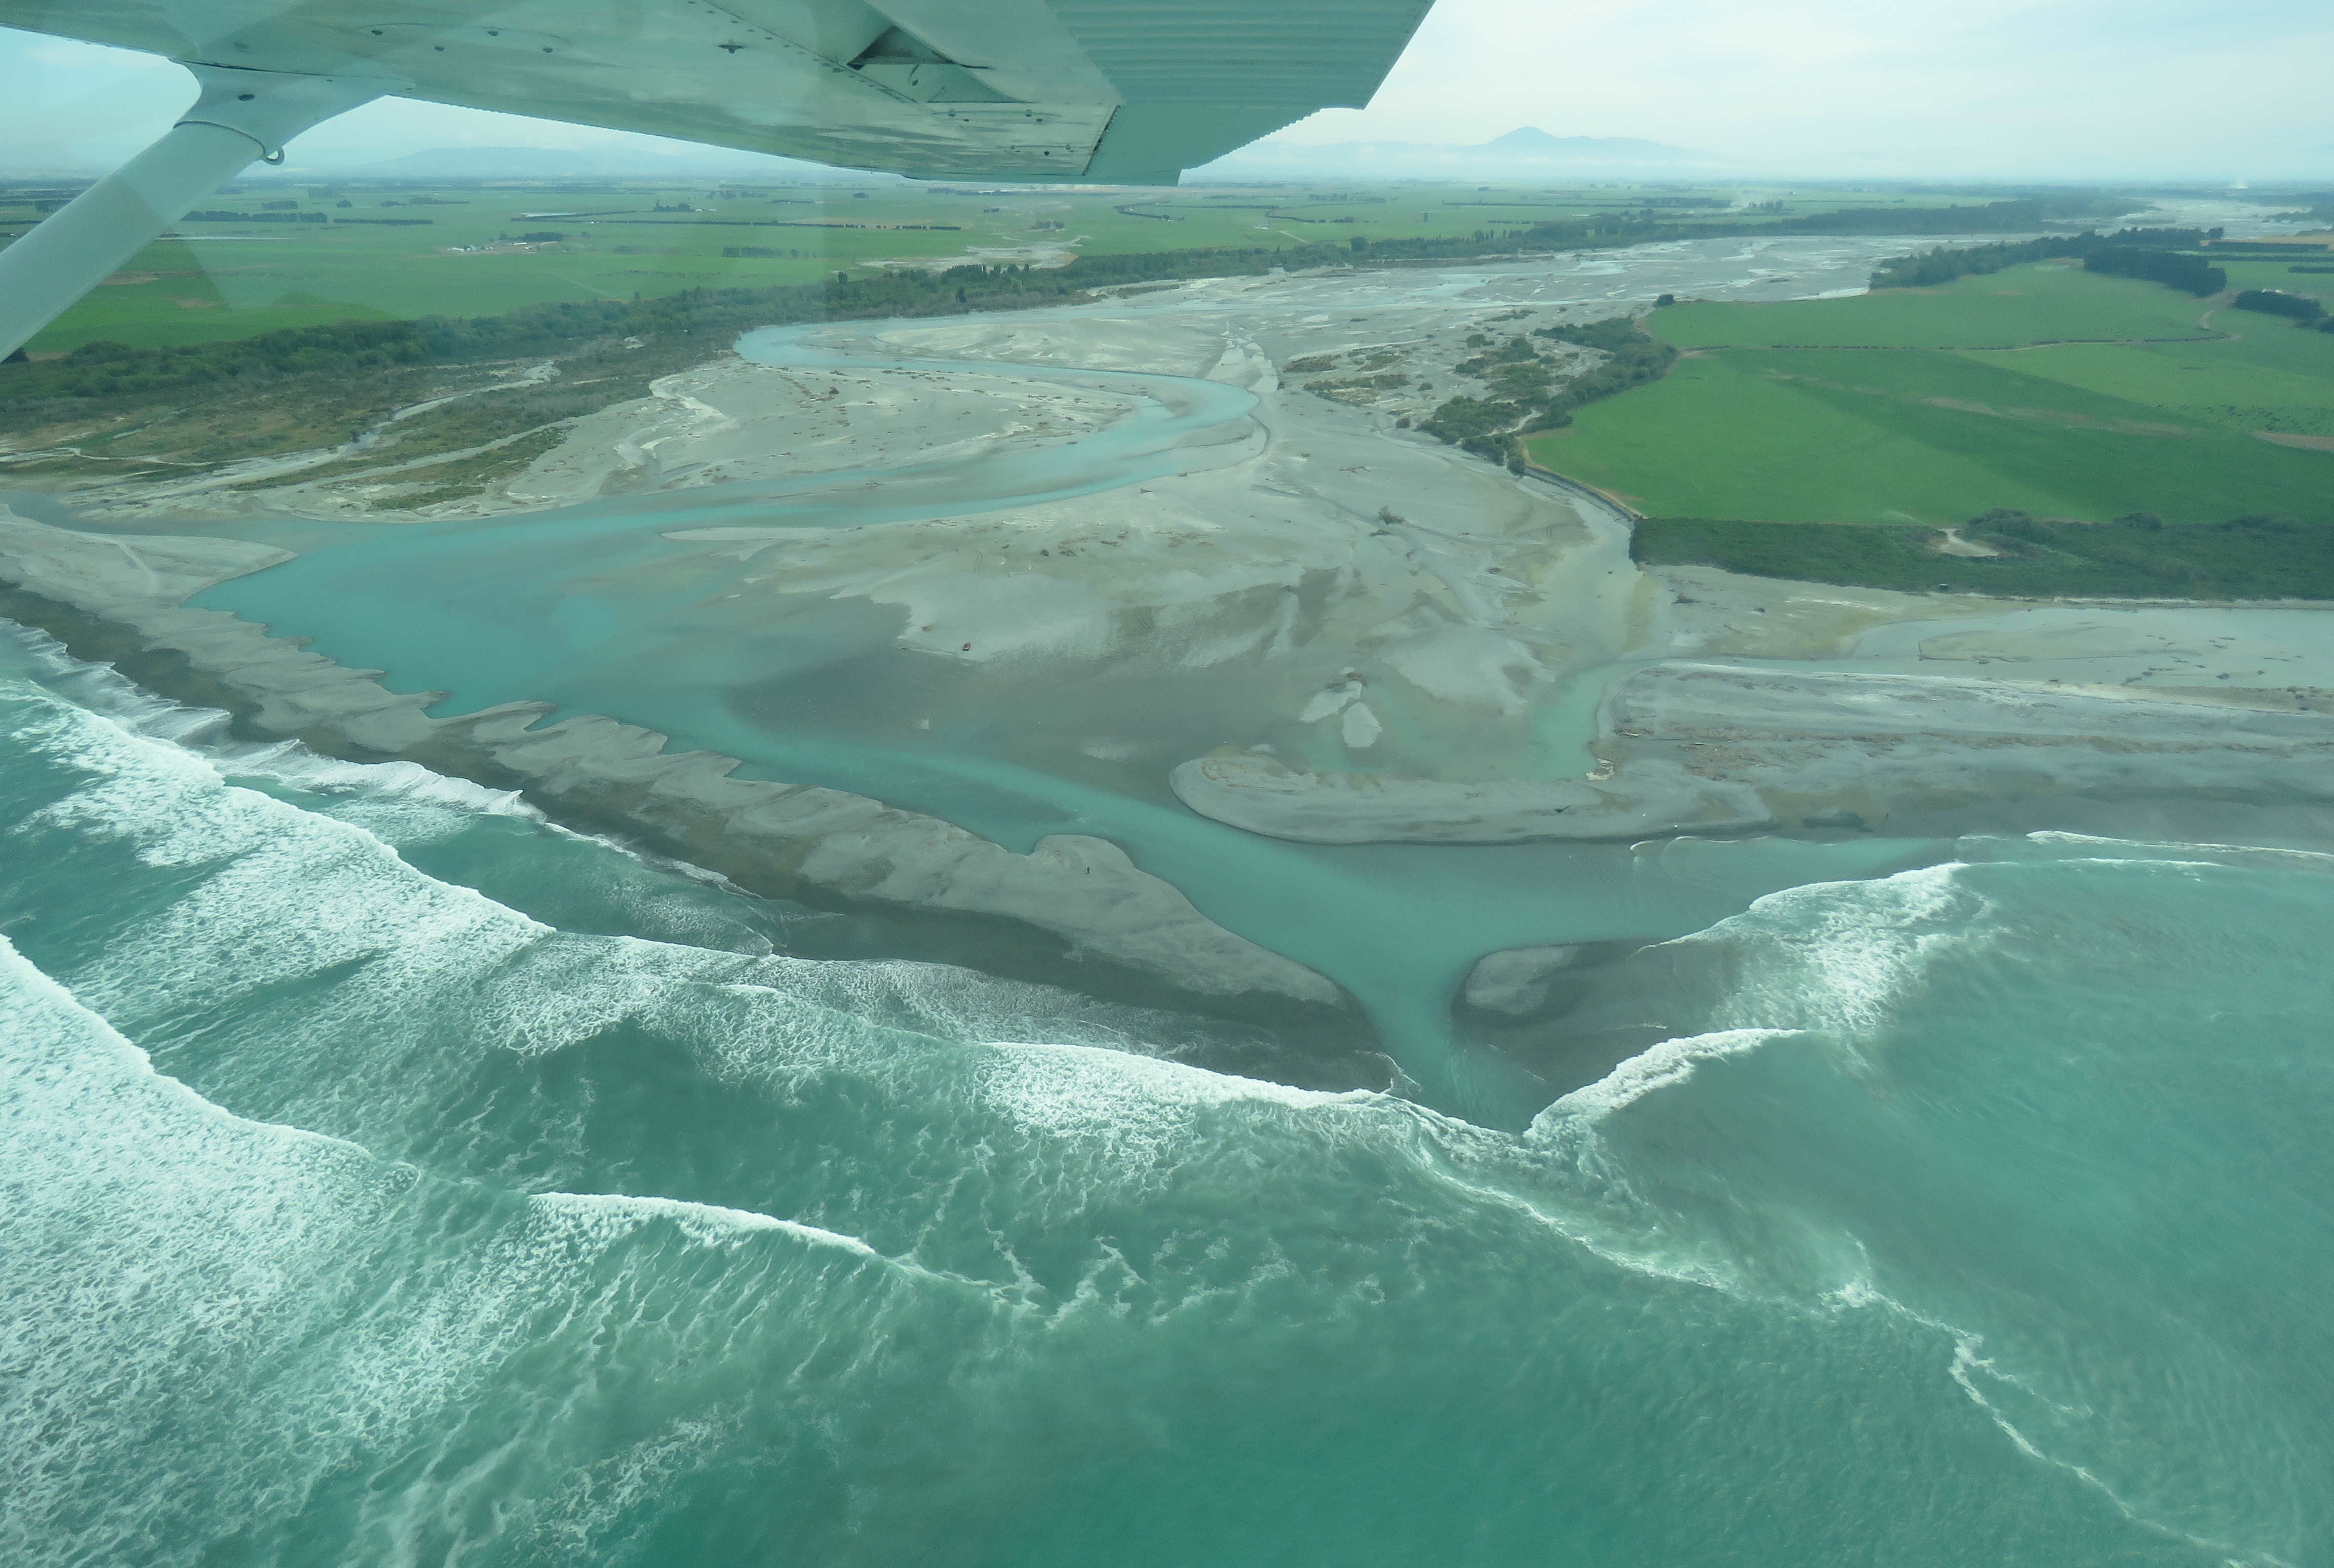 WFR1920.48 The Rangitata River mouth on Tuesday the 28th of January Credit R Adams